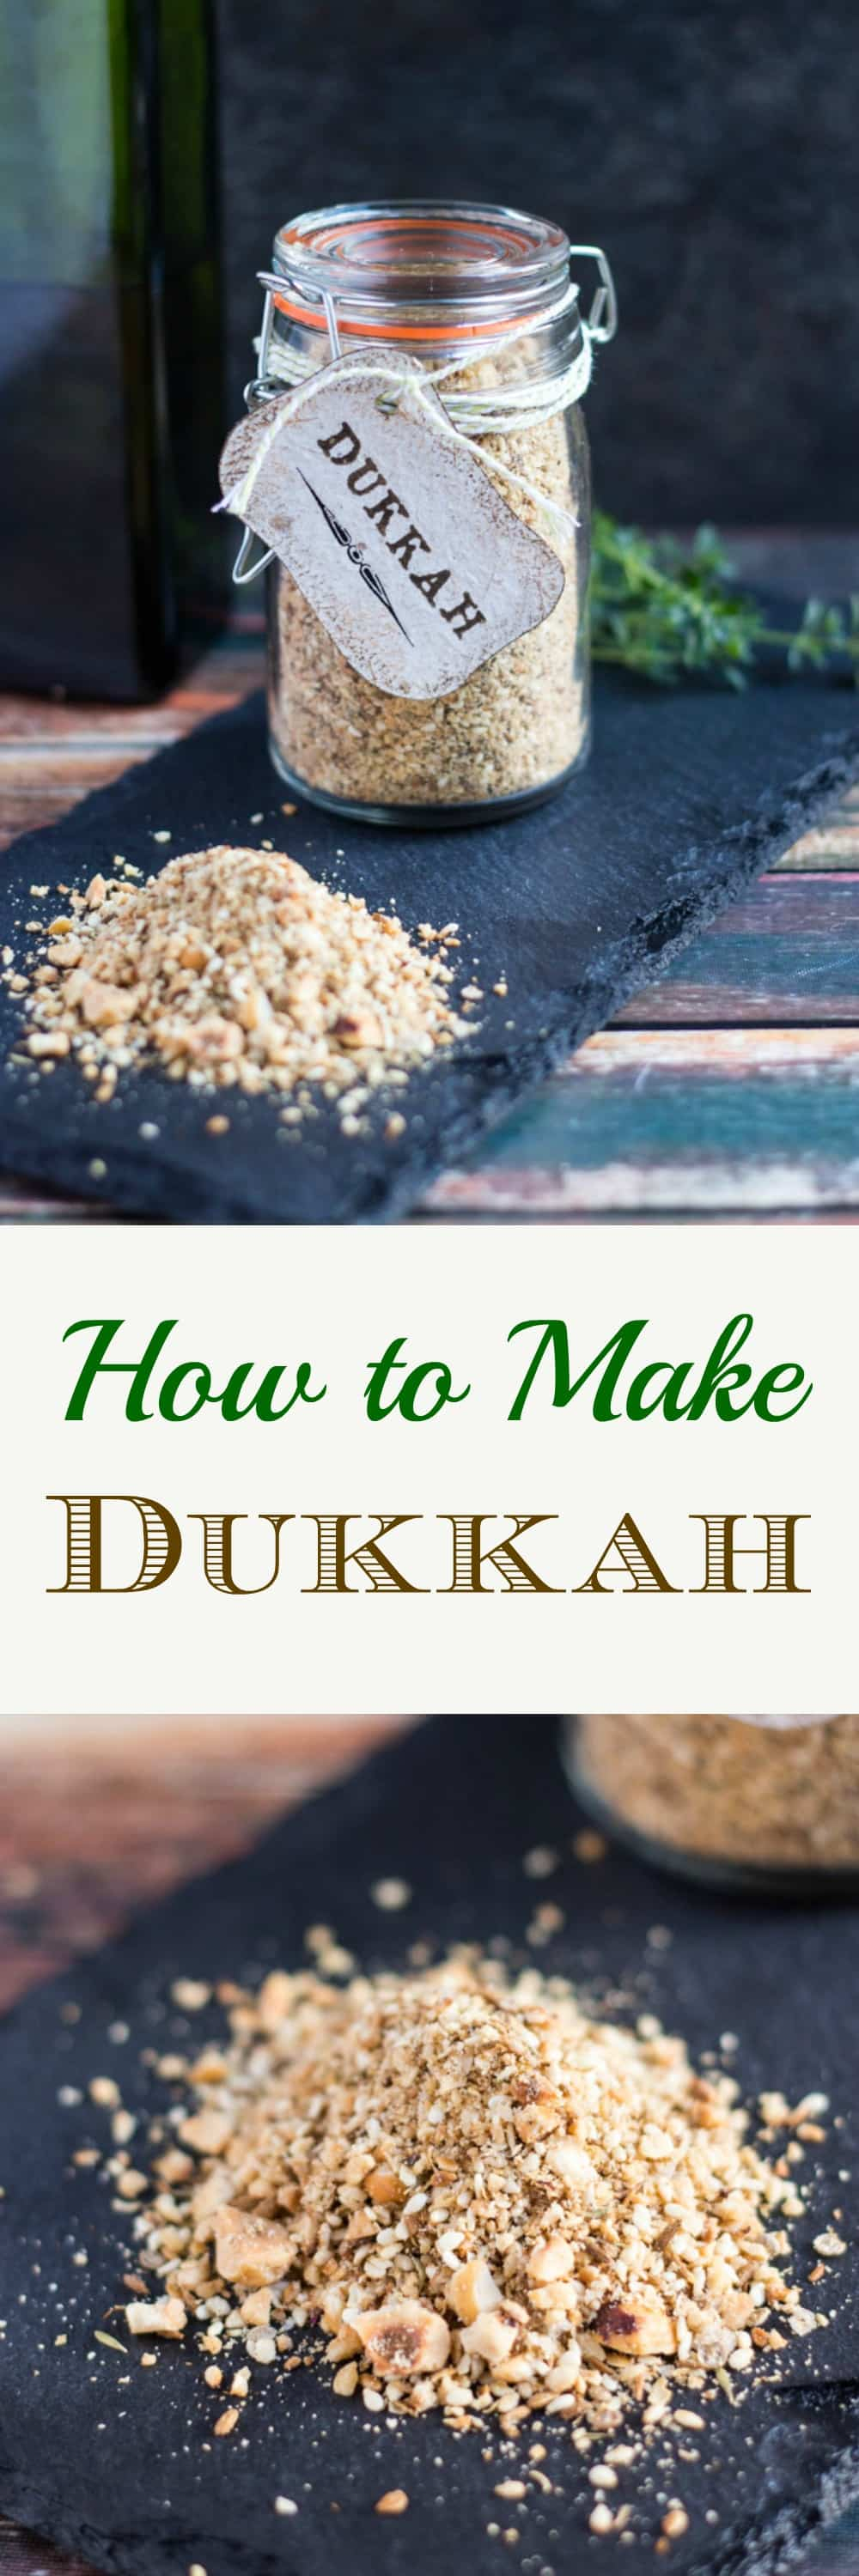 How to Make Dukkah. So simple to make at home, and makes an impressive gift.